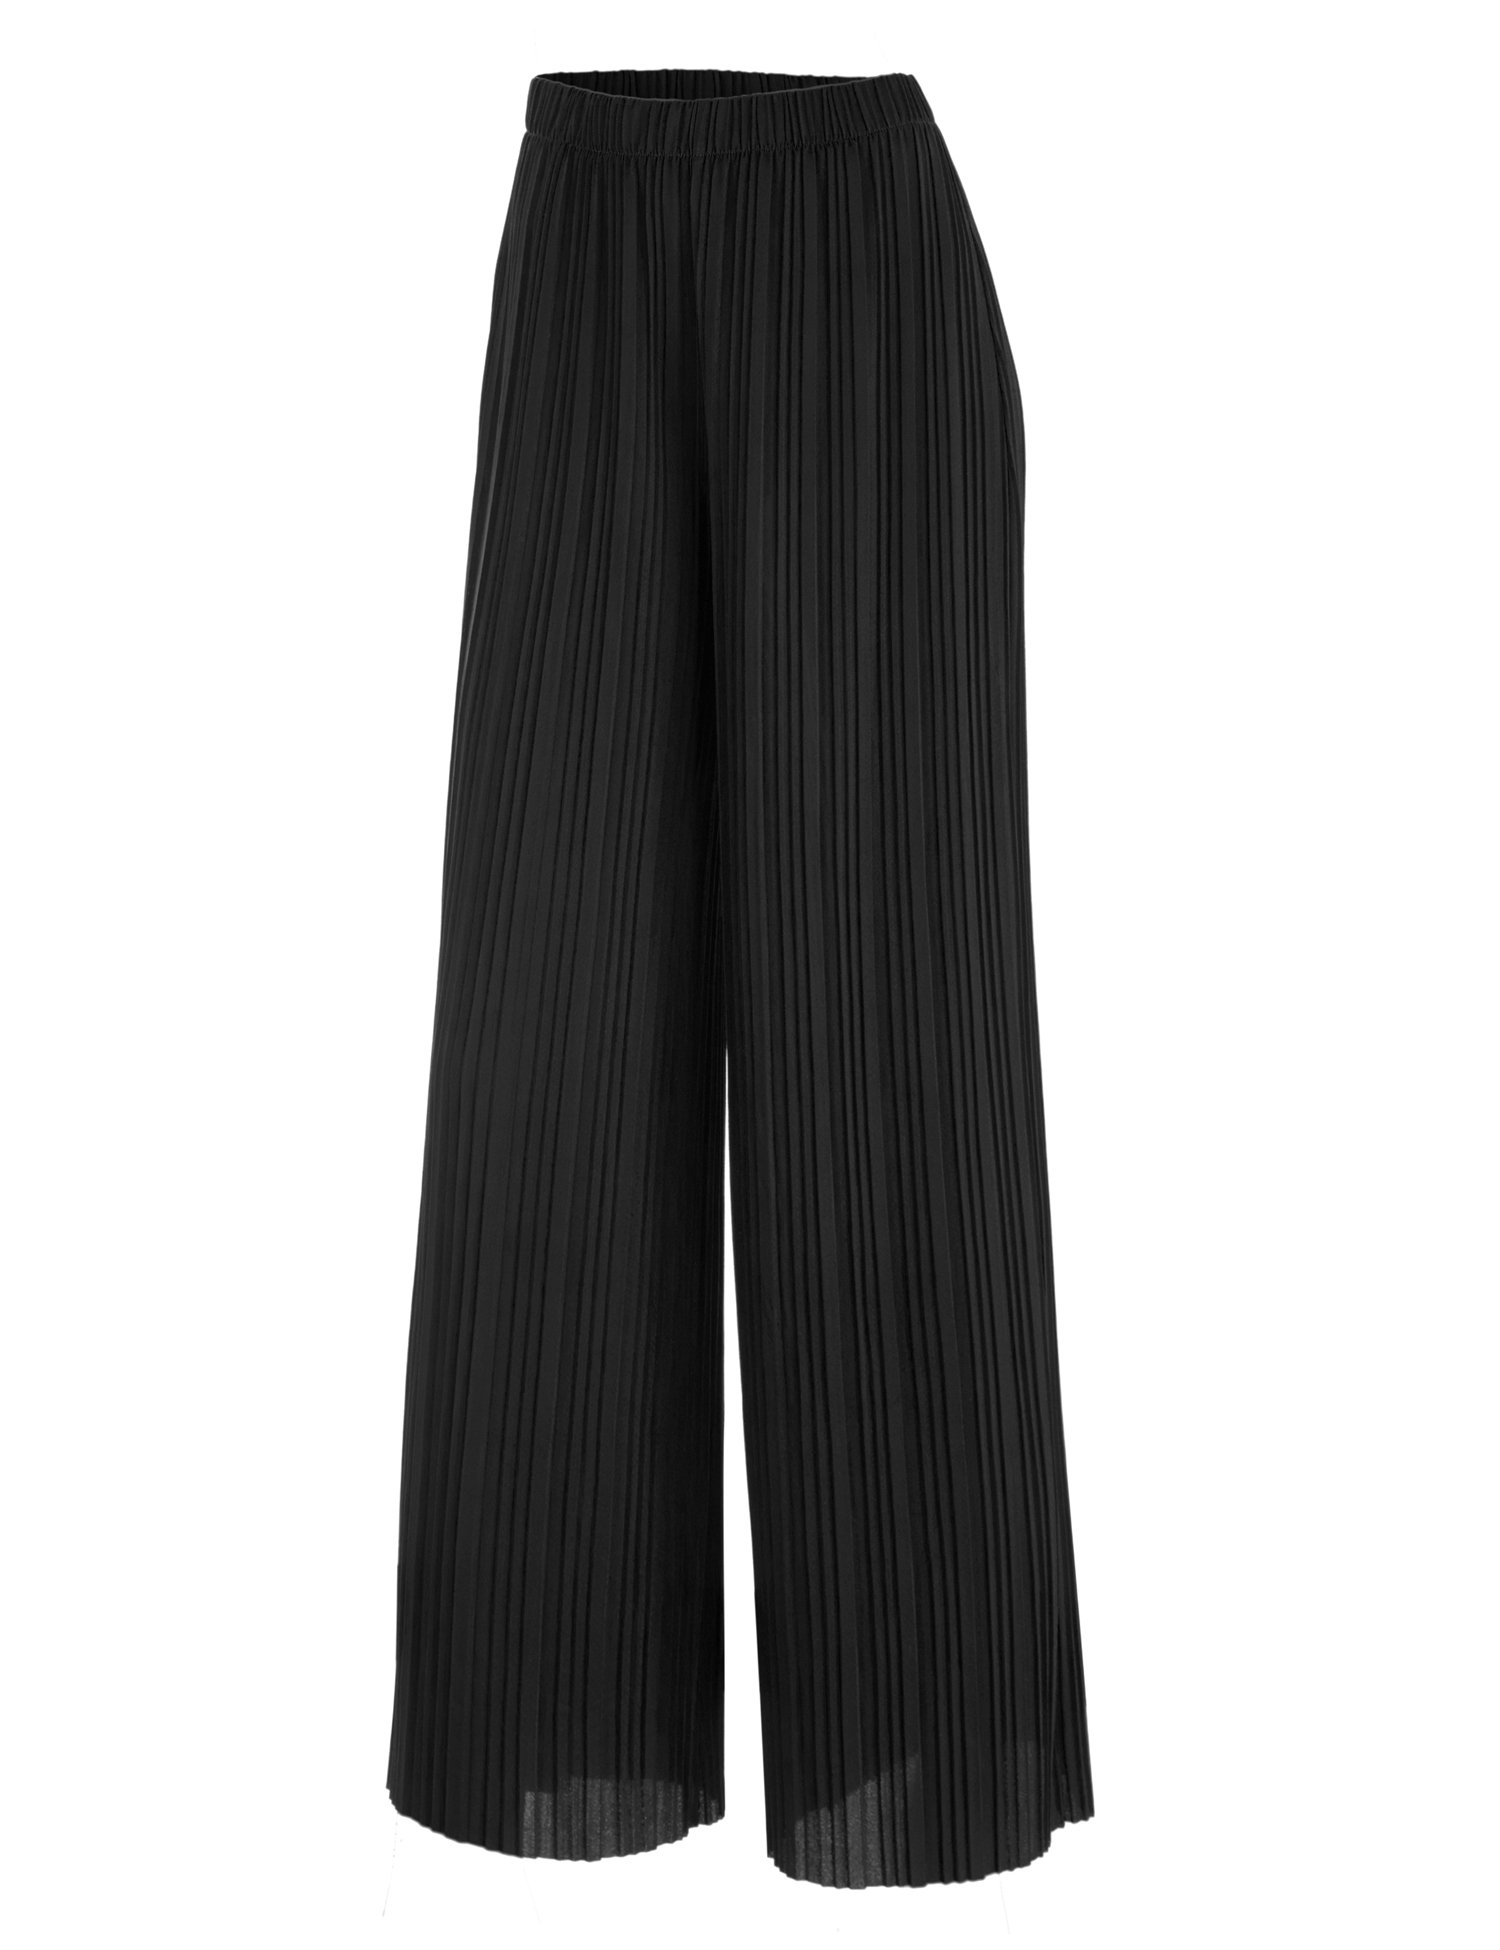 WB1794 Womens Pleated Wide Leg Pants with Elastic Waist Band-Made in USA L Black